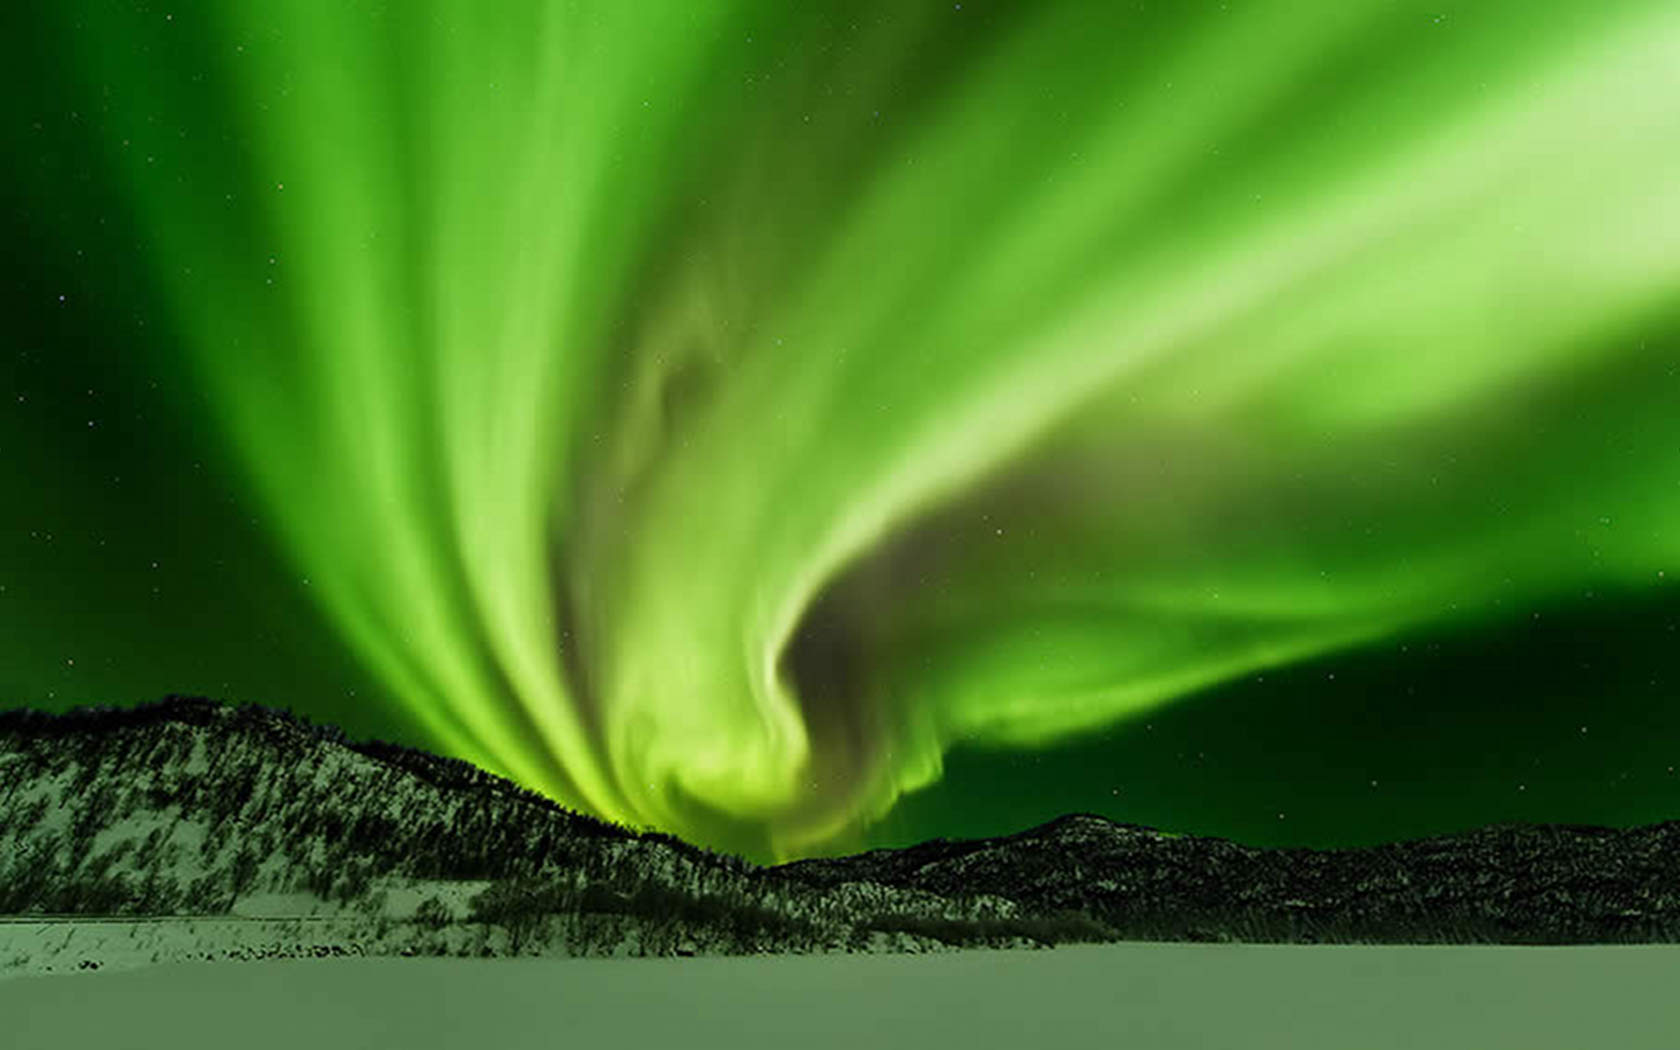 Aurora Borealis Wallpaper hd   HD Wallpapers 1680x1050